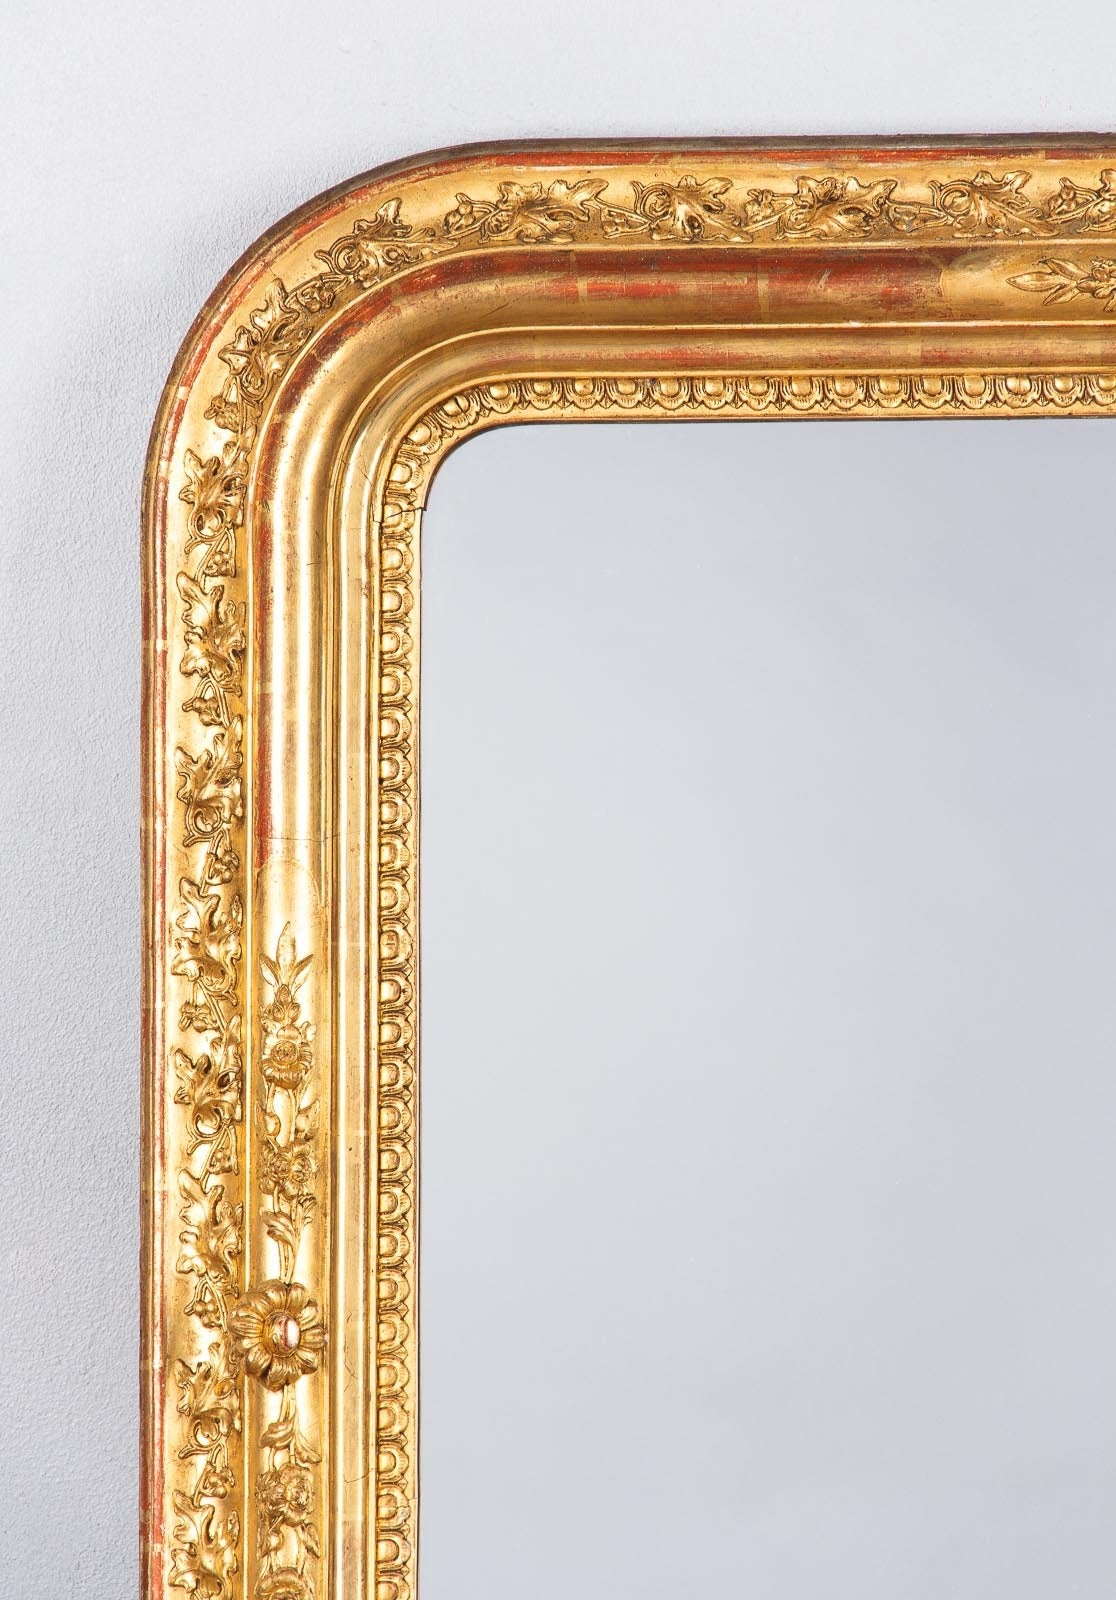 French Napoleon Iii Gold Leaf Mantel Mirror 1870s At 1stdibs